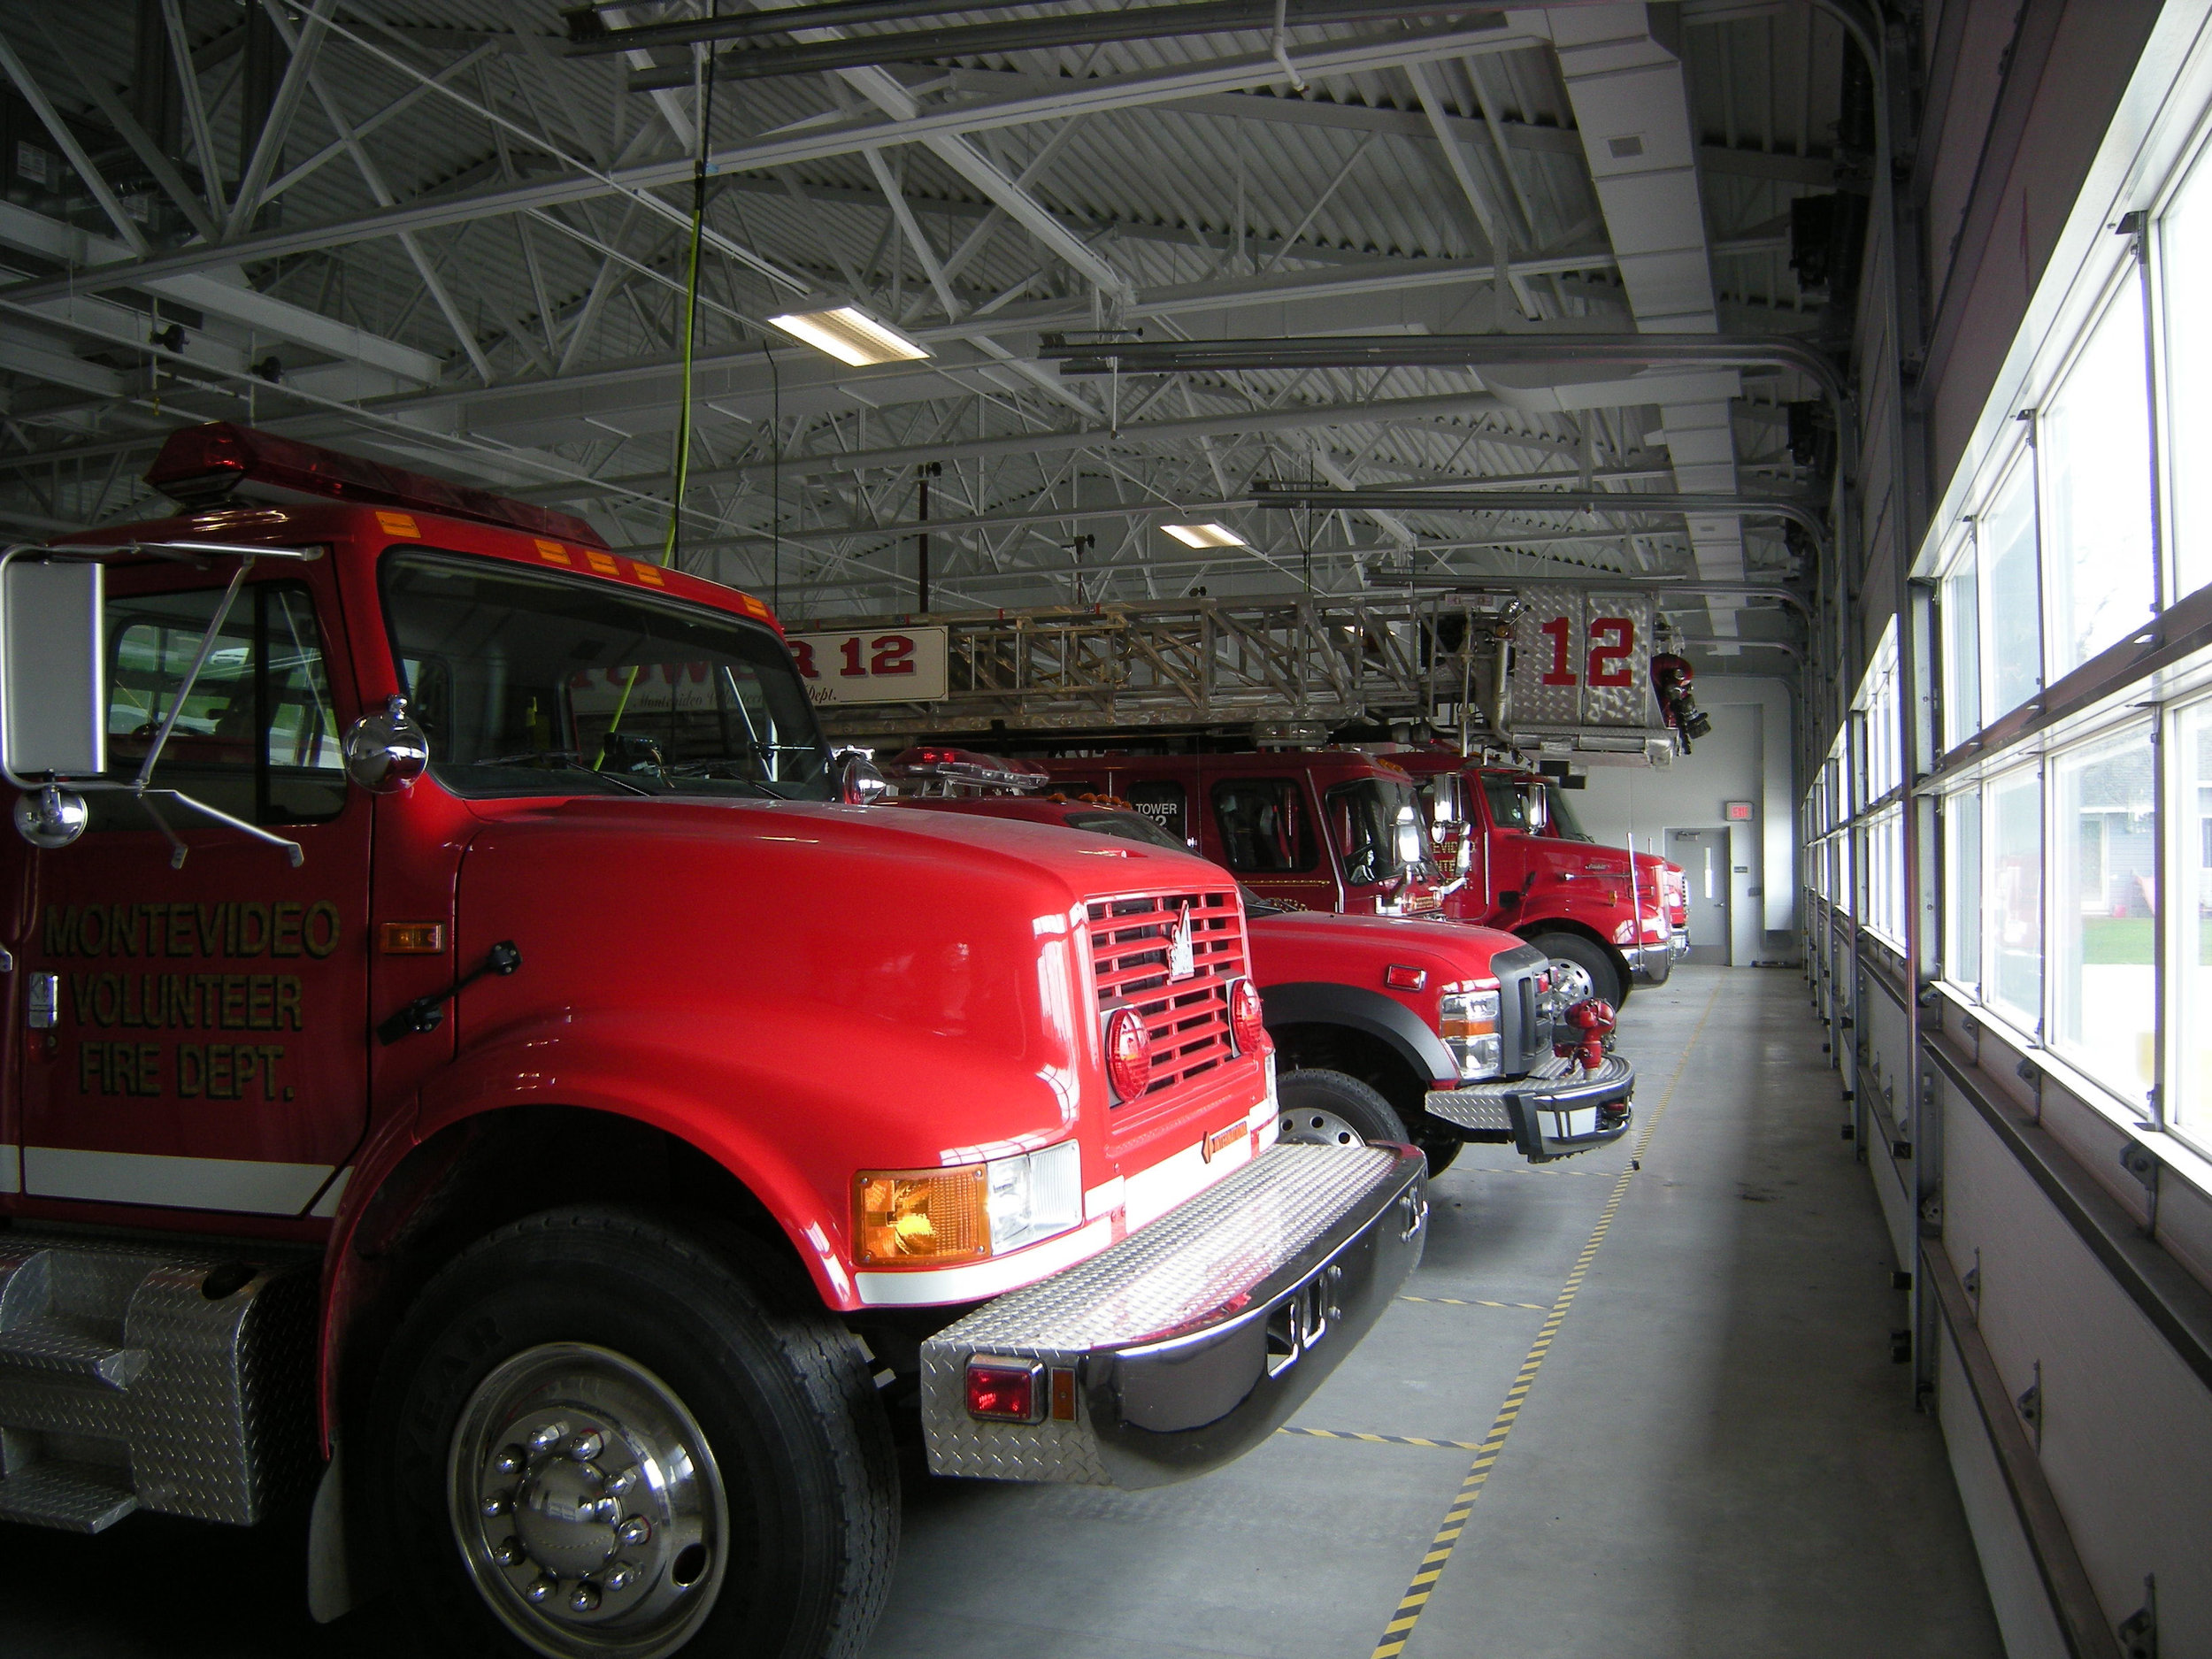 Front of firetrucks in the garage